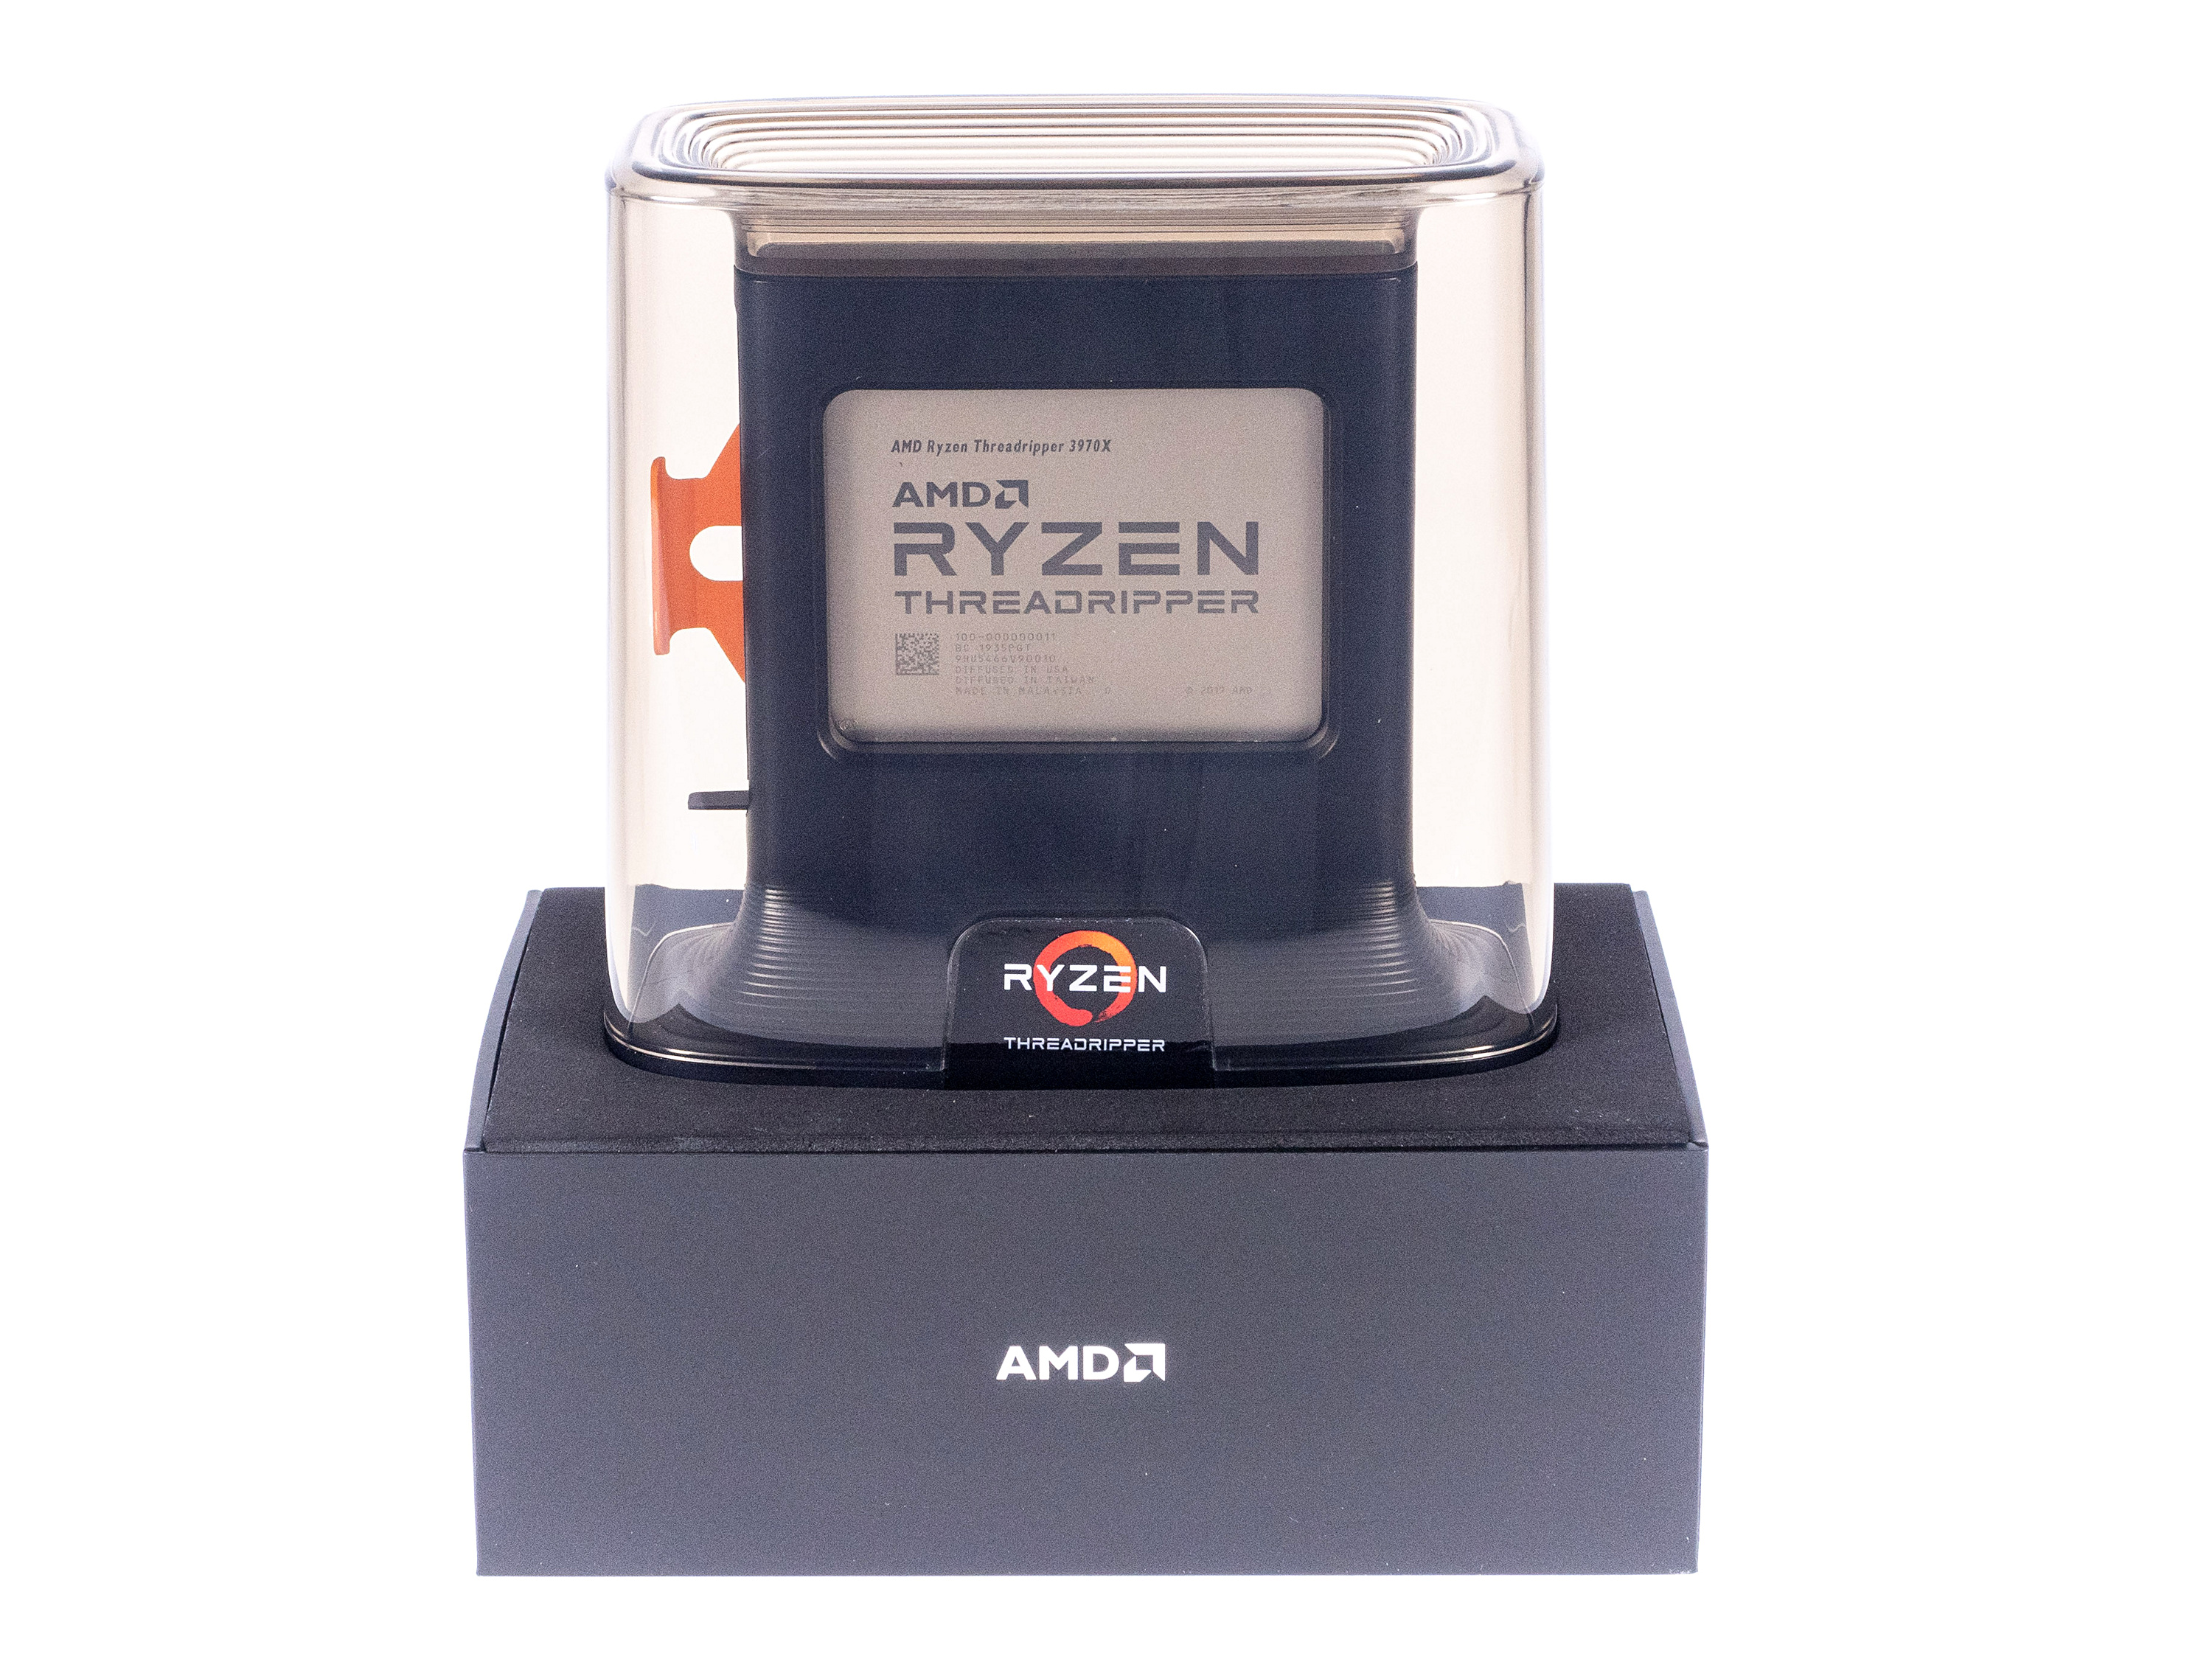 Threadripper 3970X/3960X im Test: AMD wird uneinholbar - Threadripper 3970X (Bild: Marc Sauter/Golem.de)